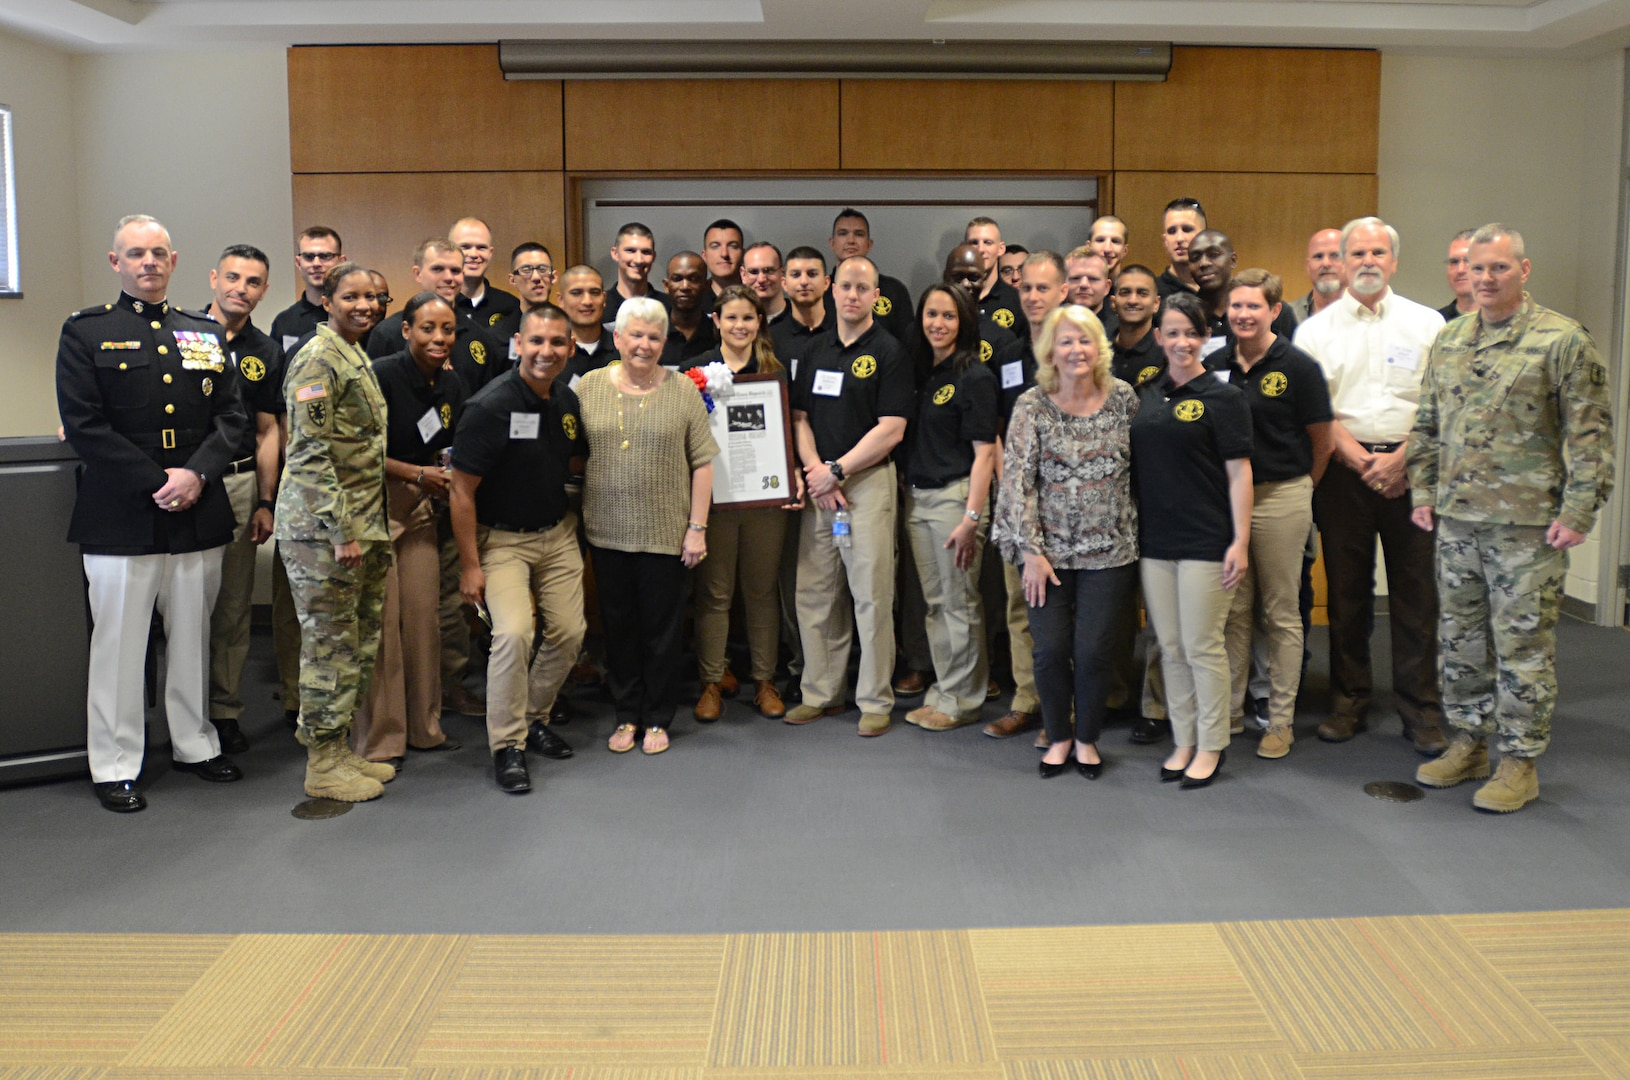 Officer candidates, graduates and cadre of the Virginia Army National Guard Officer Candidate School celebrate its 58th birthday with a ceremony April 19, 2016, at J. Sargeant Reynolds Community College's Downtown Campus in Richmond, Virginia. Officer candidates in Class 58, who are scheduled to graduate in August 2016, organized the ceremony, which included the family of Capt. Harry Q. Rose, a graduate of Class VIII who was killed in Vietnam in 1969 and remains the only Virginia OCS graduate to have been killed in action. (Photo by Master Sgt. A.J. Coyne, Virginia National Guard Public Affairs)